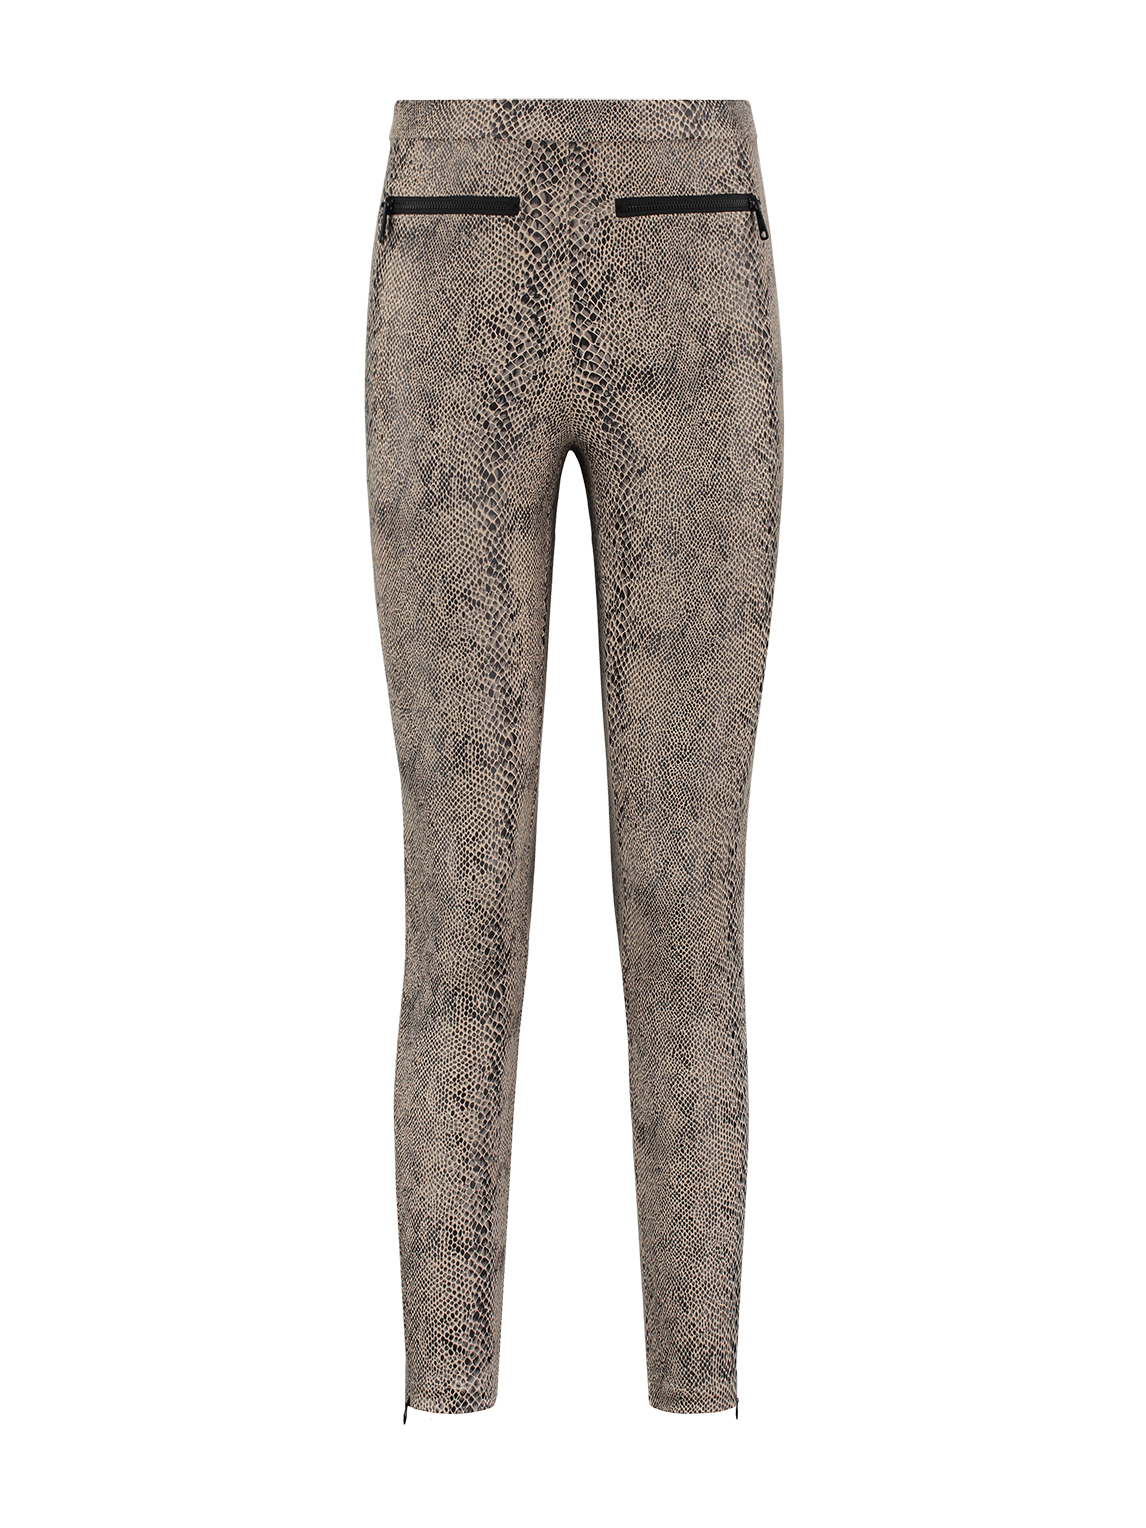 Geprinte dames legging Nikkie - Nancy Legging - N2-651 1905 5506